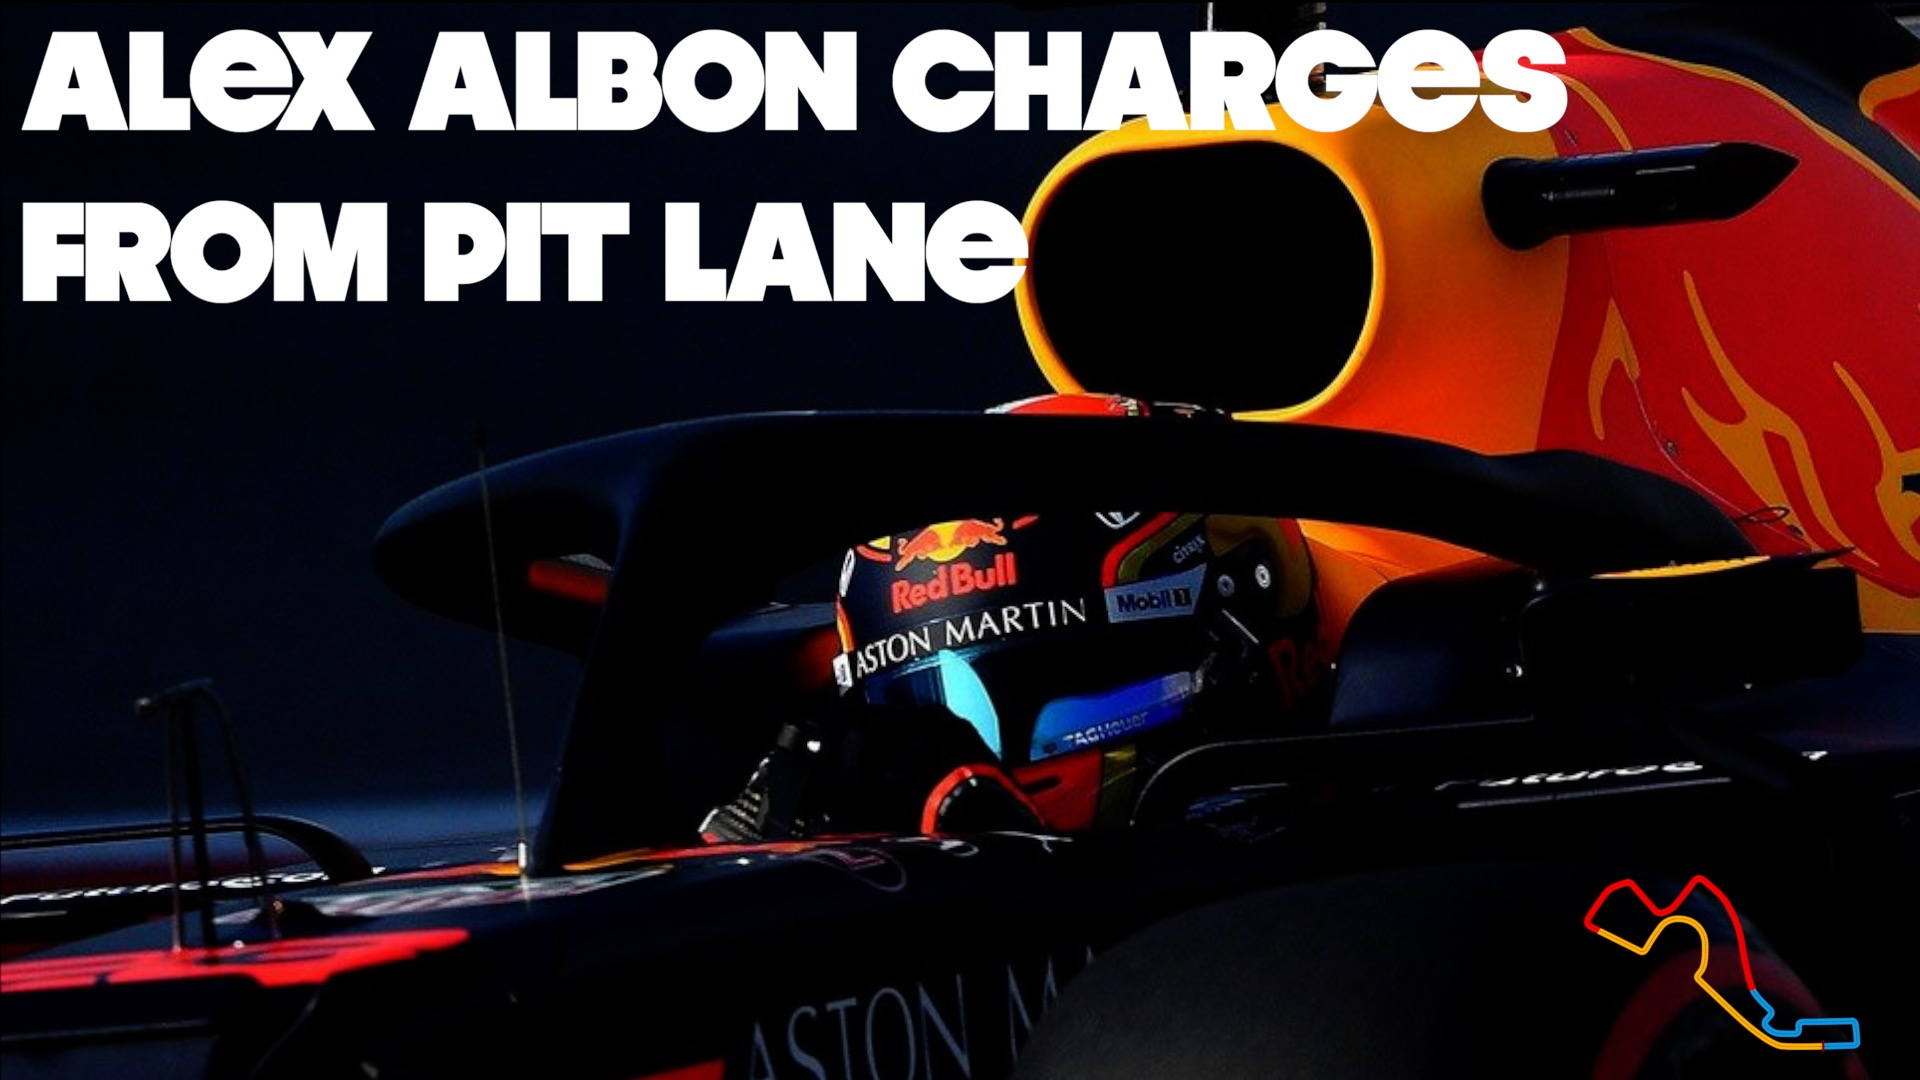 Alex Albon Russia Charge Pit Lane To P5: 2019 Russian Grand Prix ONBOARD